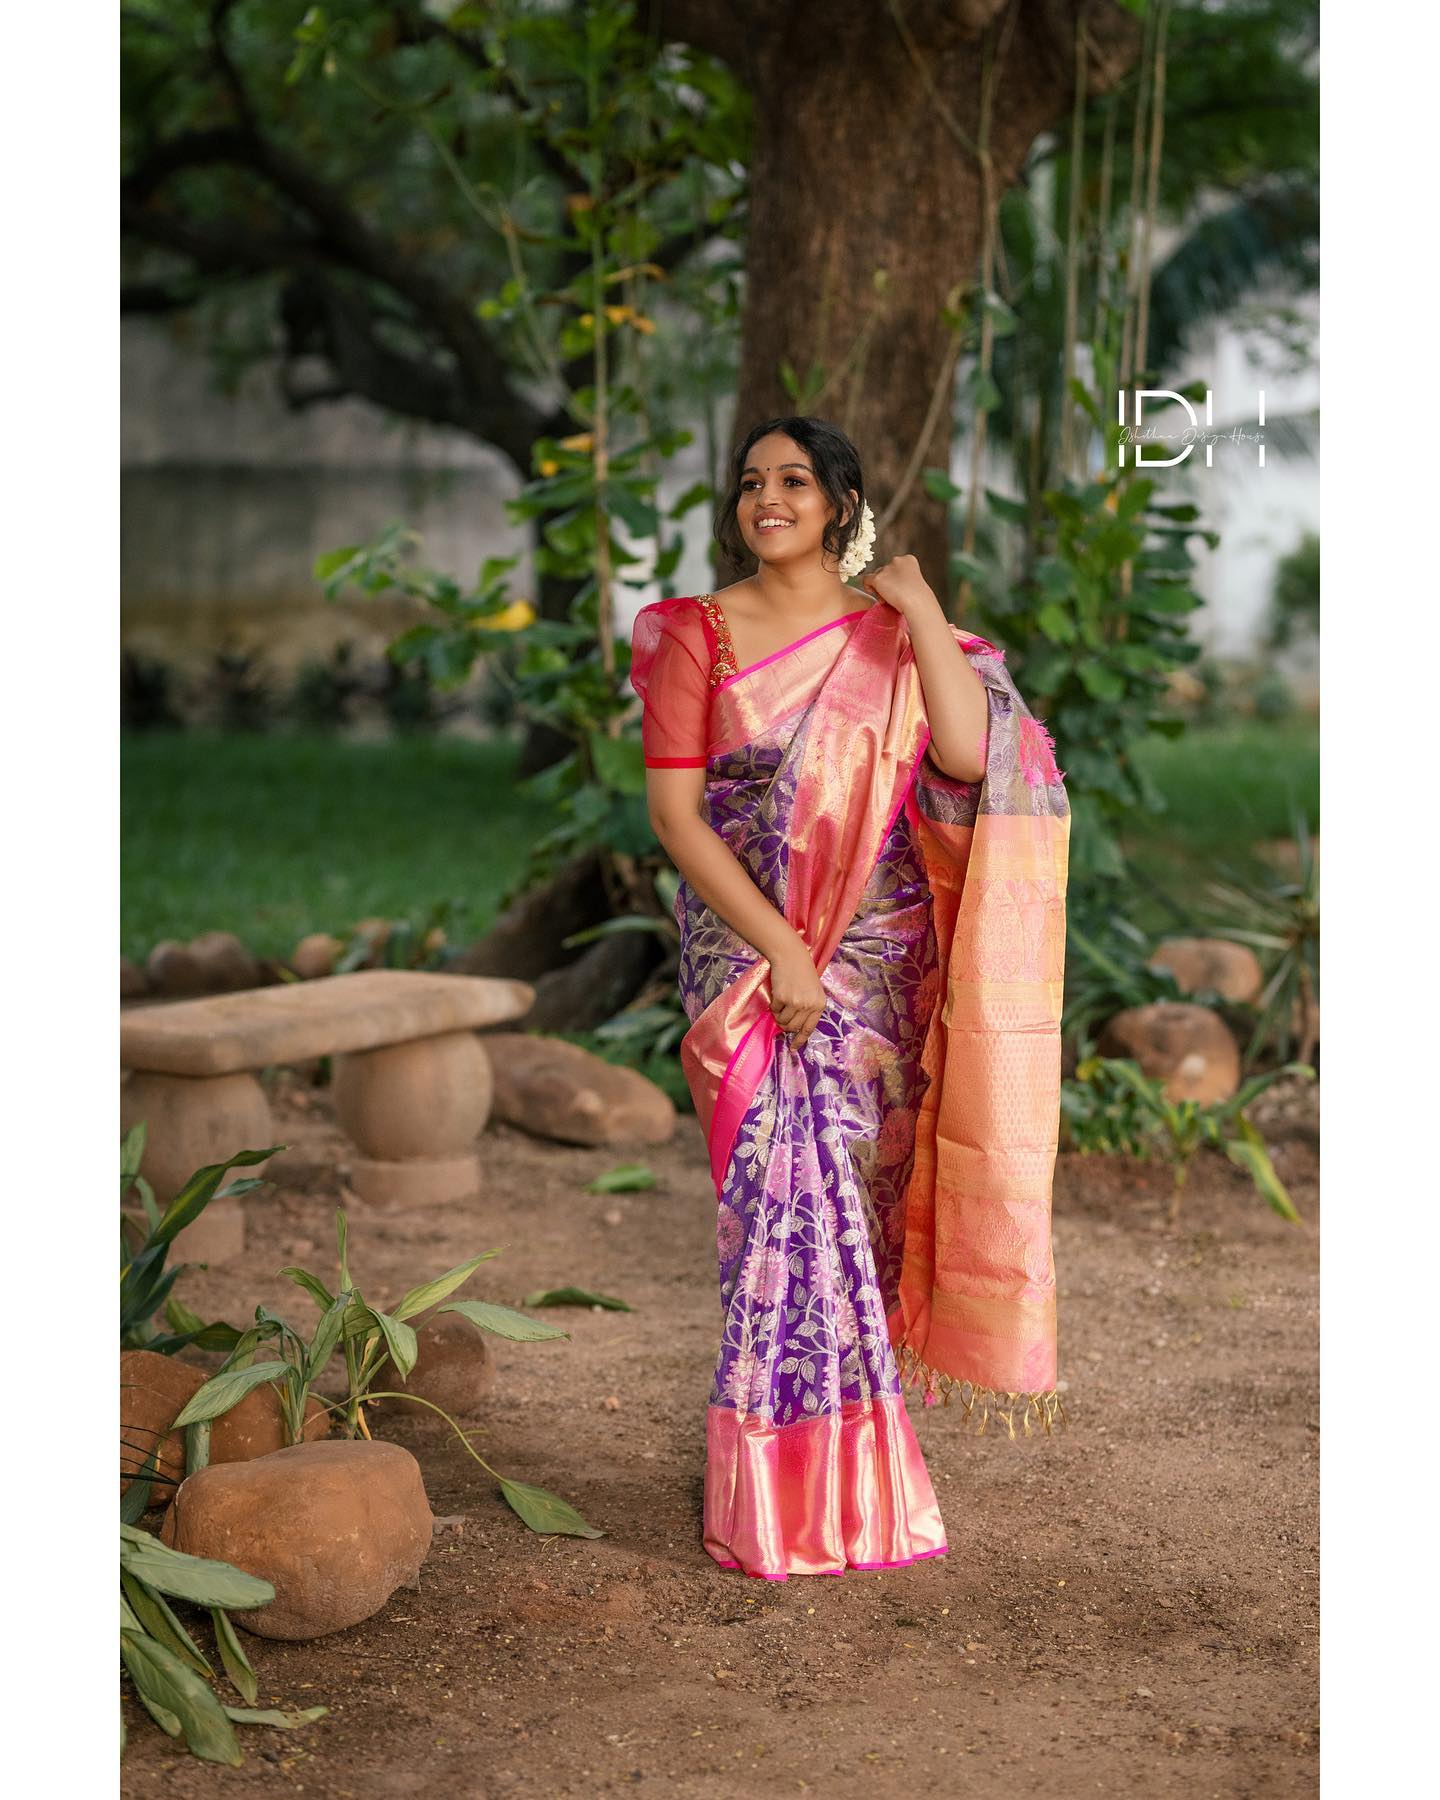 Stunning embroidery blouse for matching kanchi pattu saree. Blouse with see through net sleeves. Beautiful muse : Nakshatra Murthy . Blouse : Ishithaa design house . Saree : Aaryanair designs . Muah : kavitha Sekar . Photography: Nithin . . . . Ping on 9884179863 to book an appointment...   2021-07-25